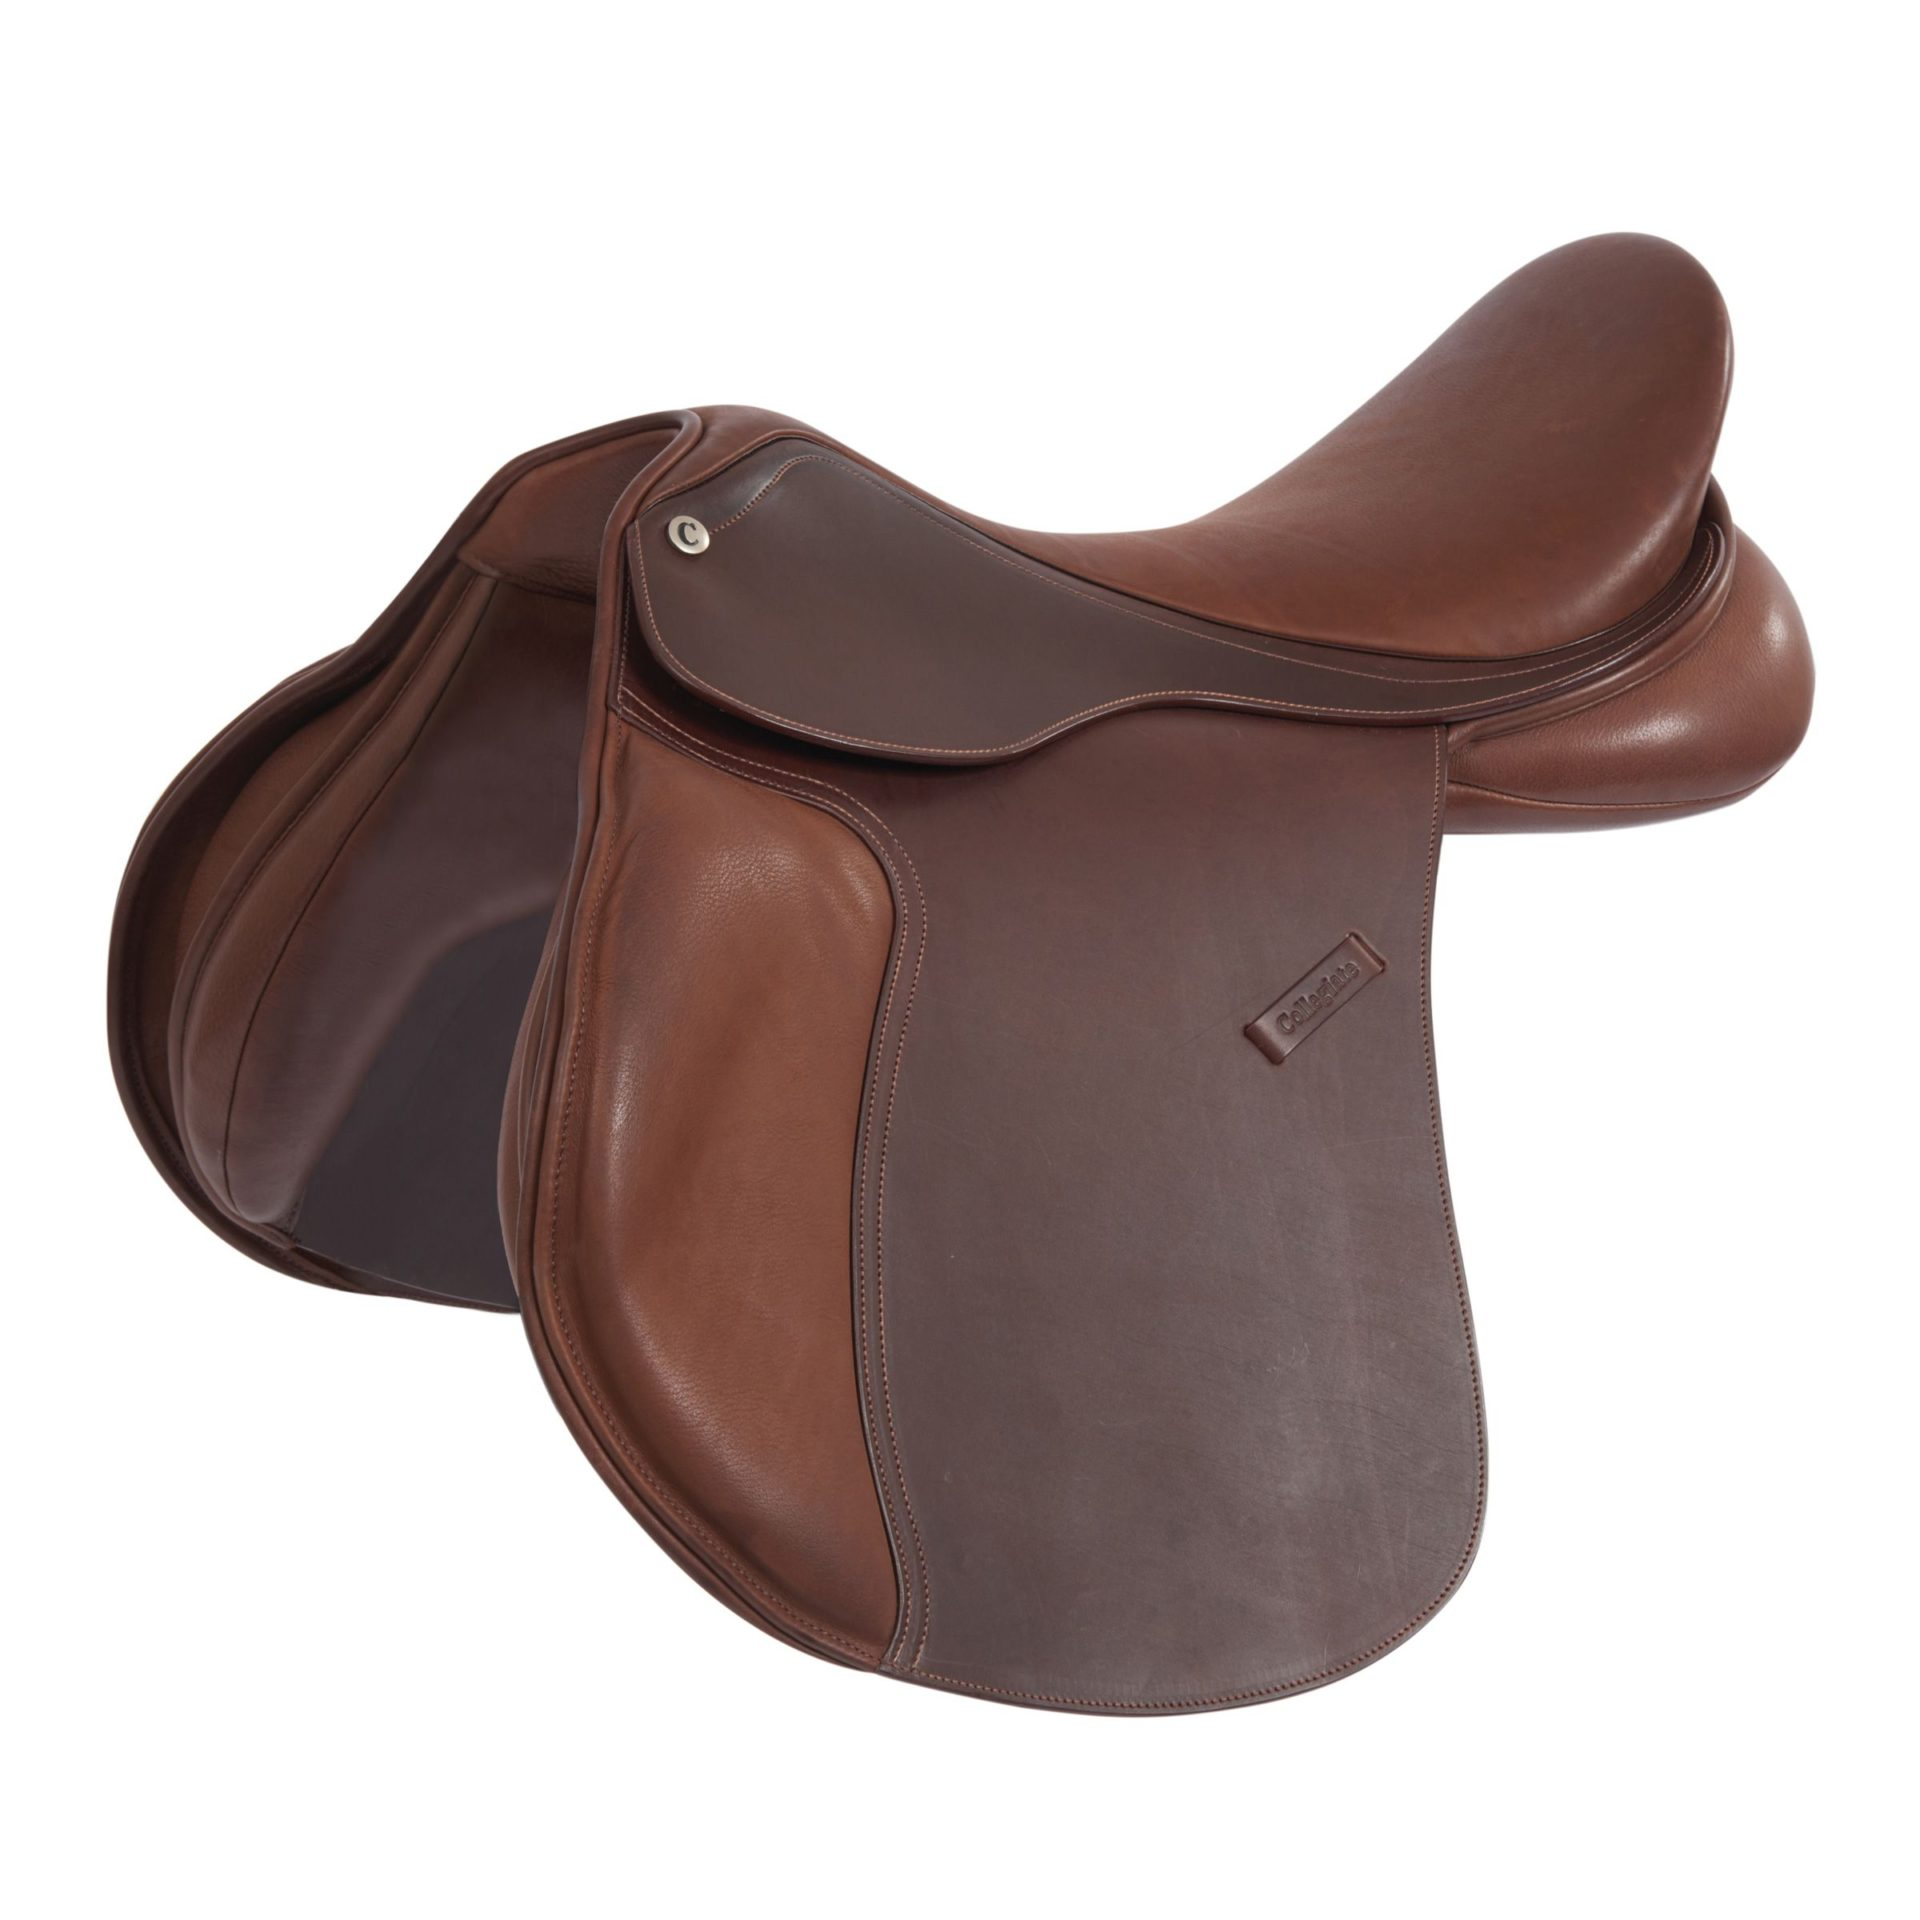 Collegiate Scholar All-Purpose Saddle Round-Cantle